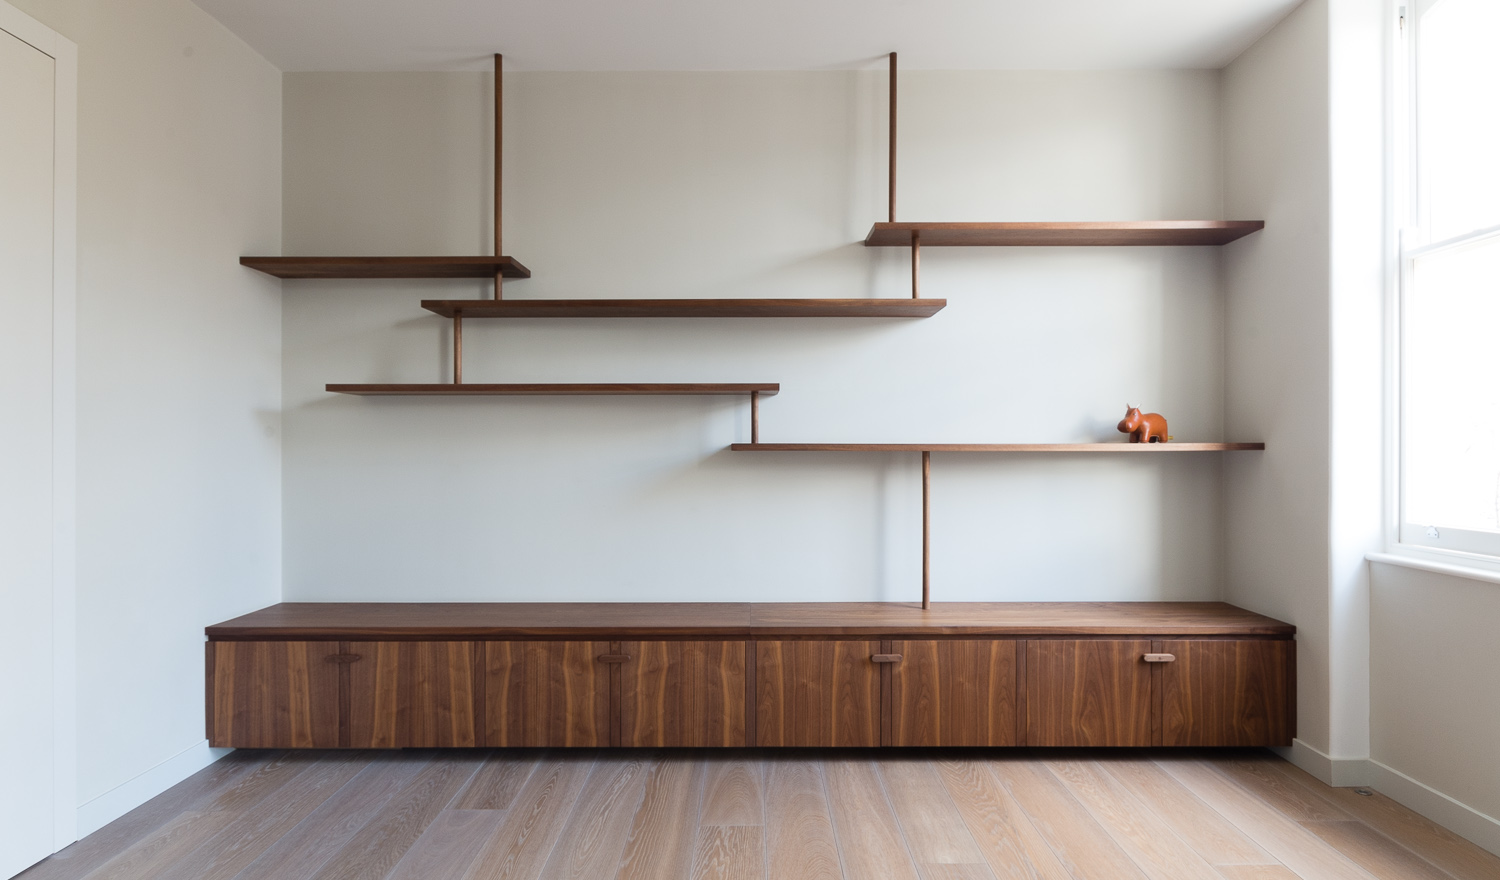 Copy of Japanese inspired shelving and bespoke fitted cabinets american black walnut